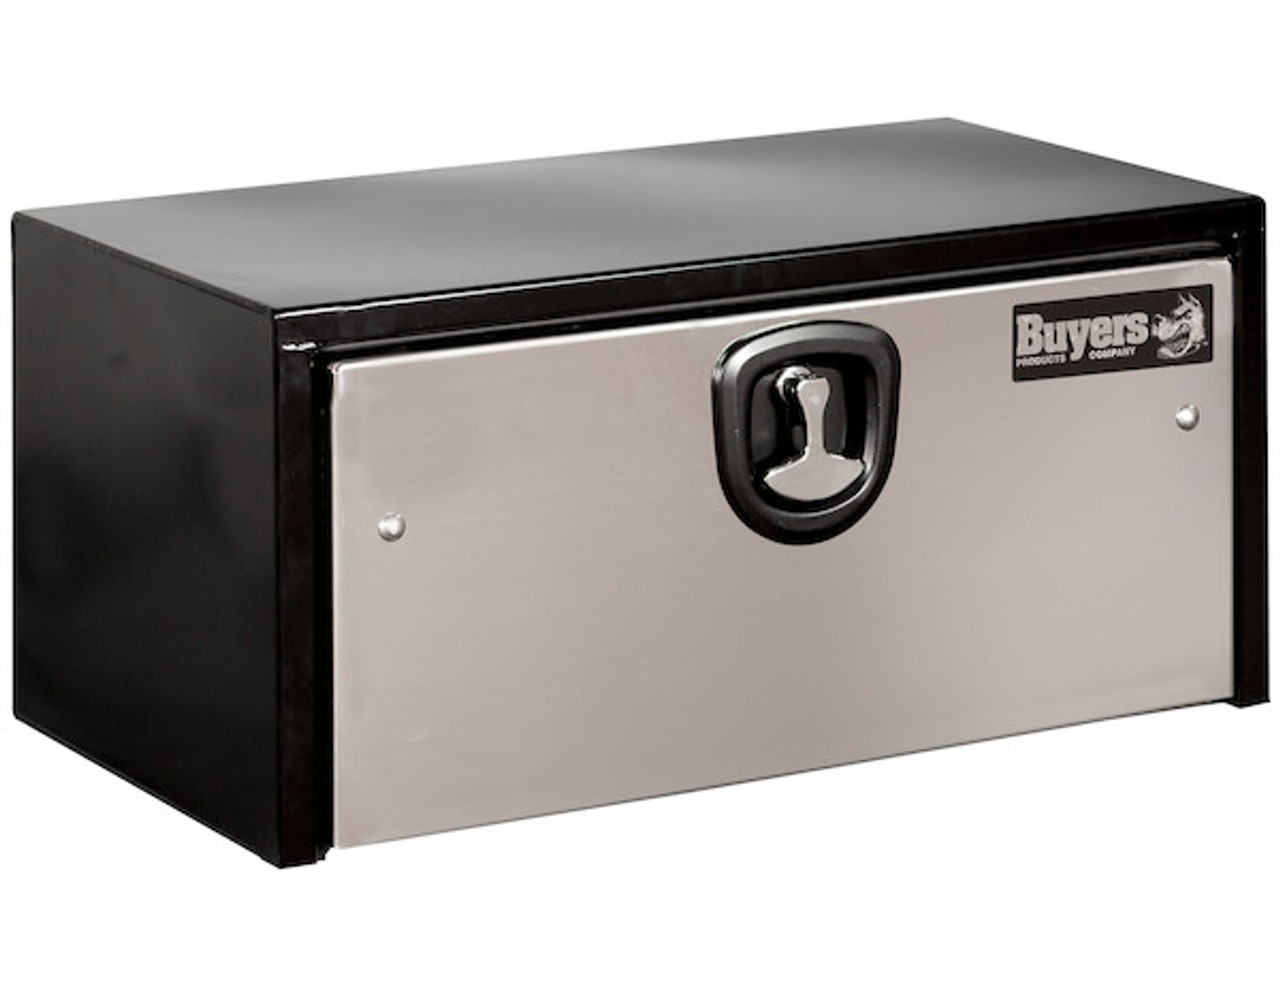 1703705 BUYERS PRODUCTS BLACK STEEL UNDERBODY TRUCK BOX WITH STAINLESS STEEL DOOR TOOLBOX